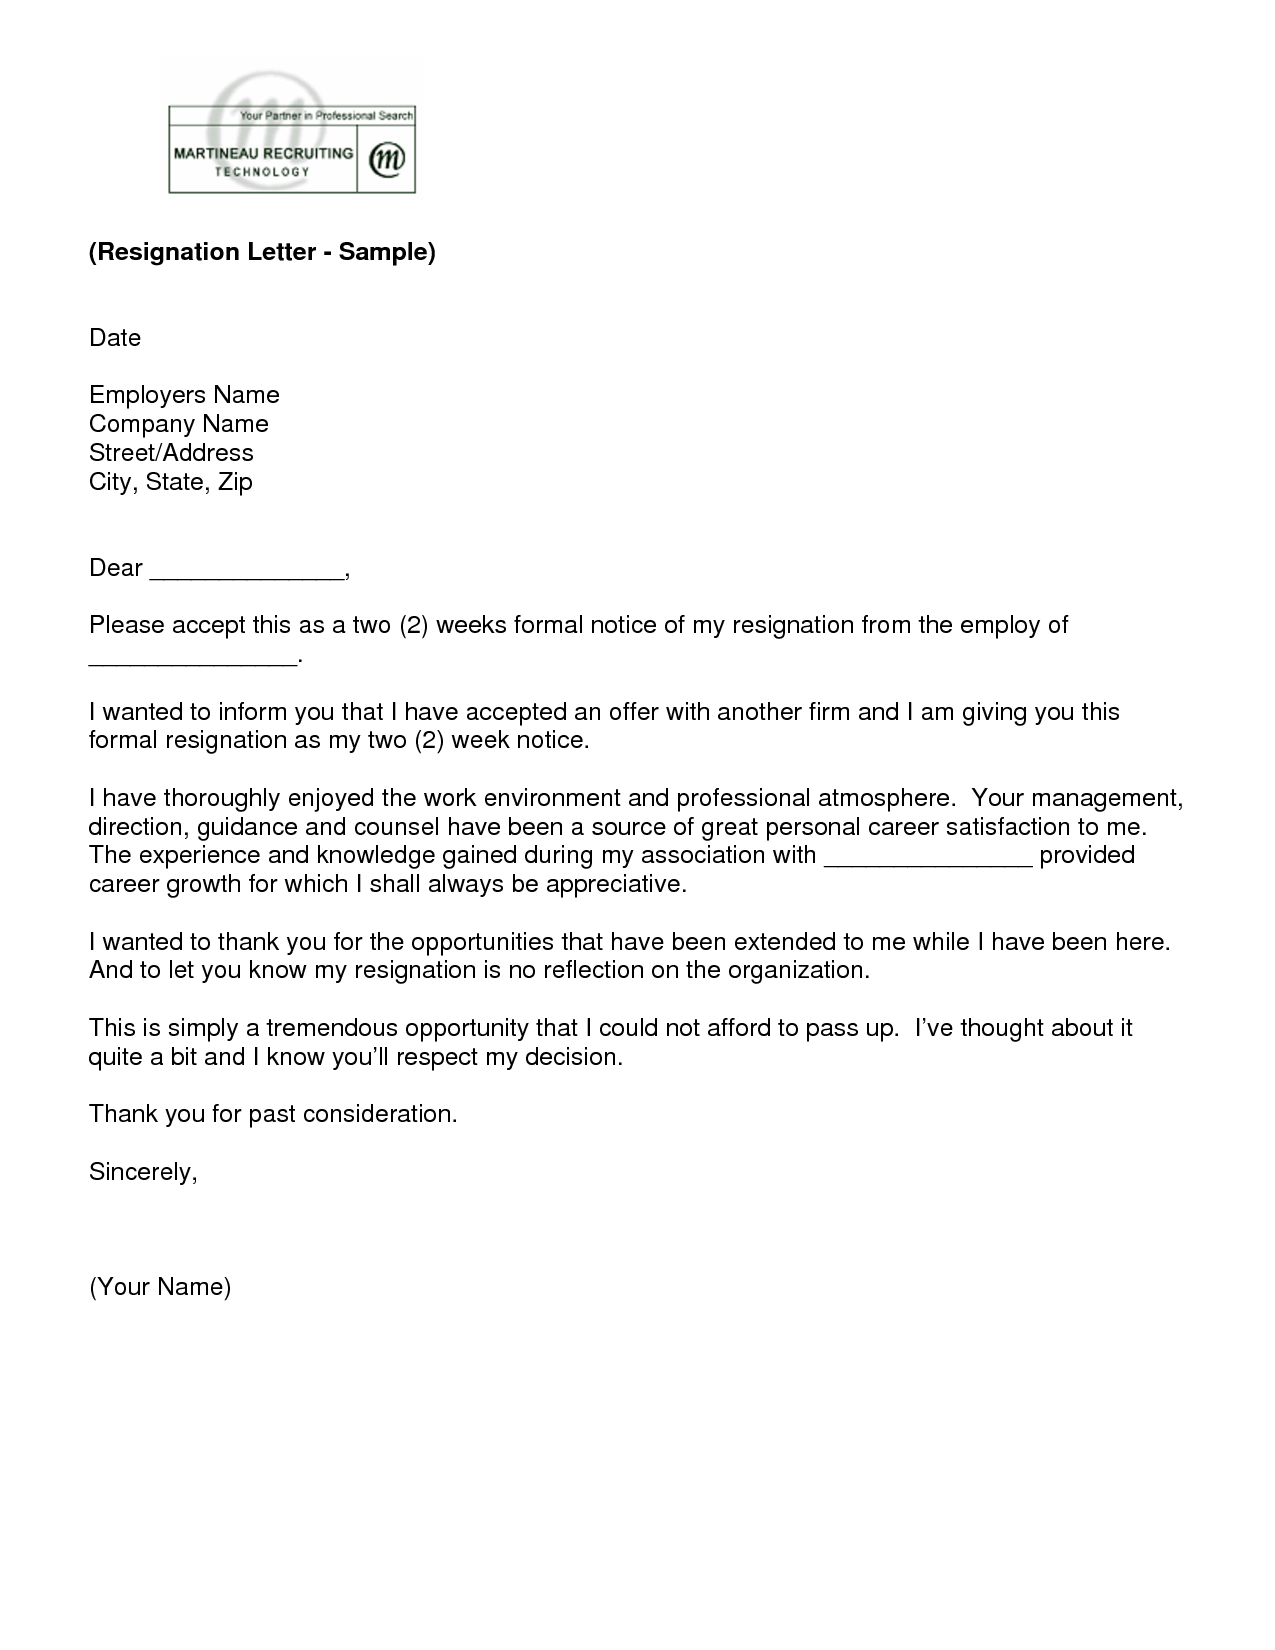 resignation letter 2 week notice letter of resignation 2 weeks notice template ew 1568